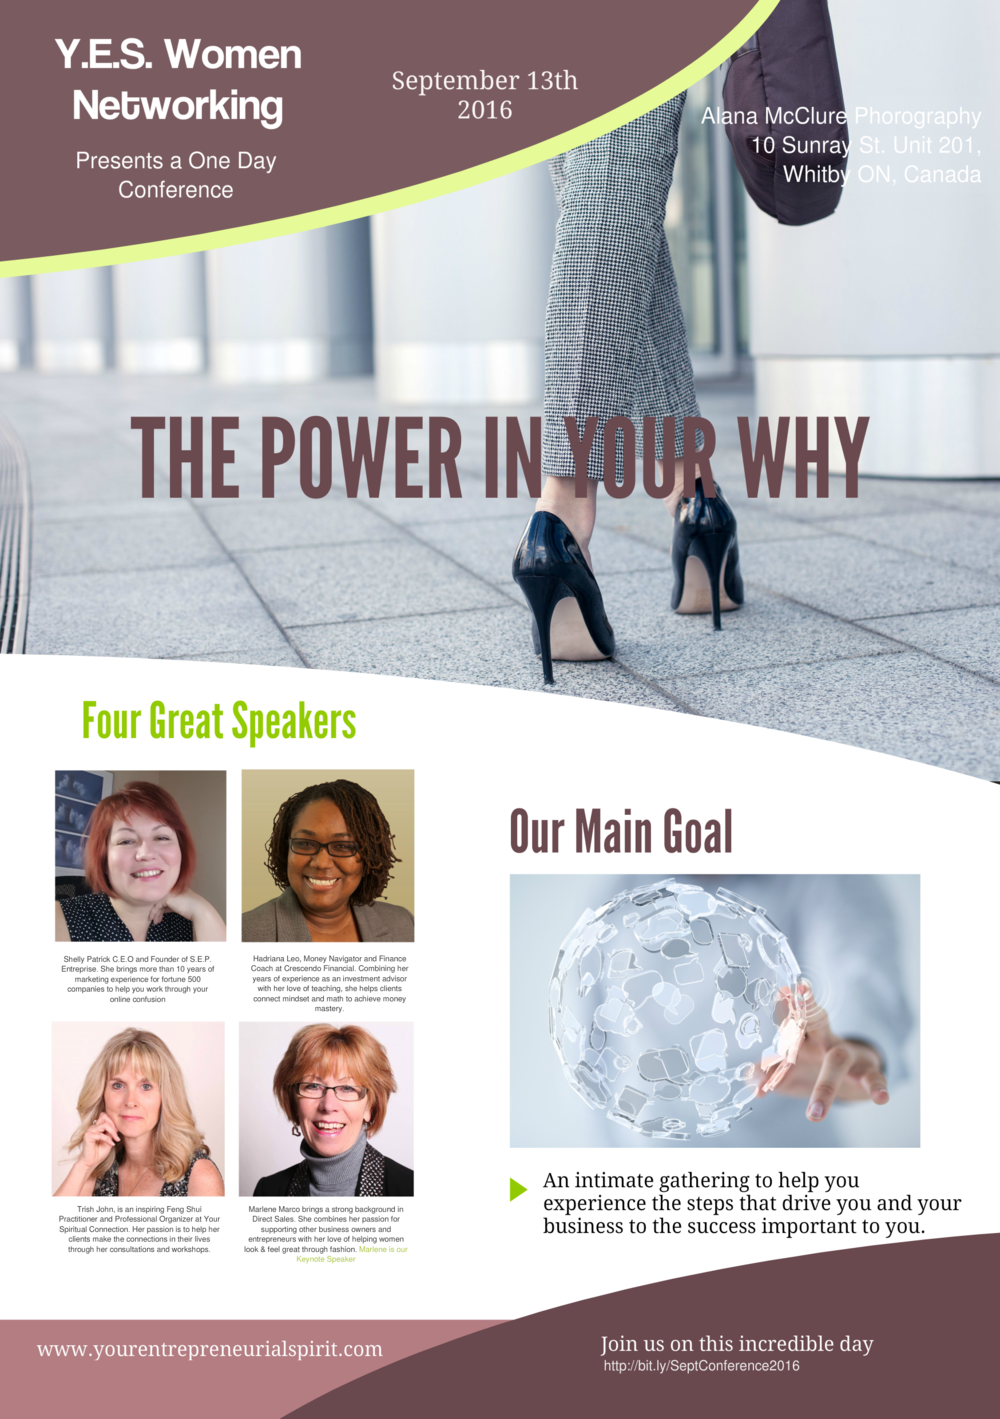 PowerInWhyConferenceFlyer